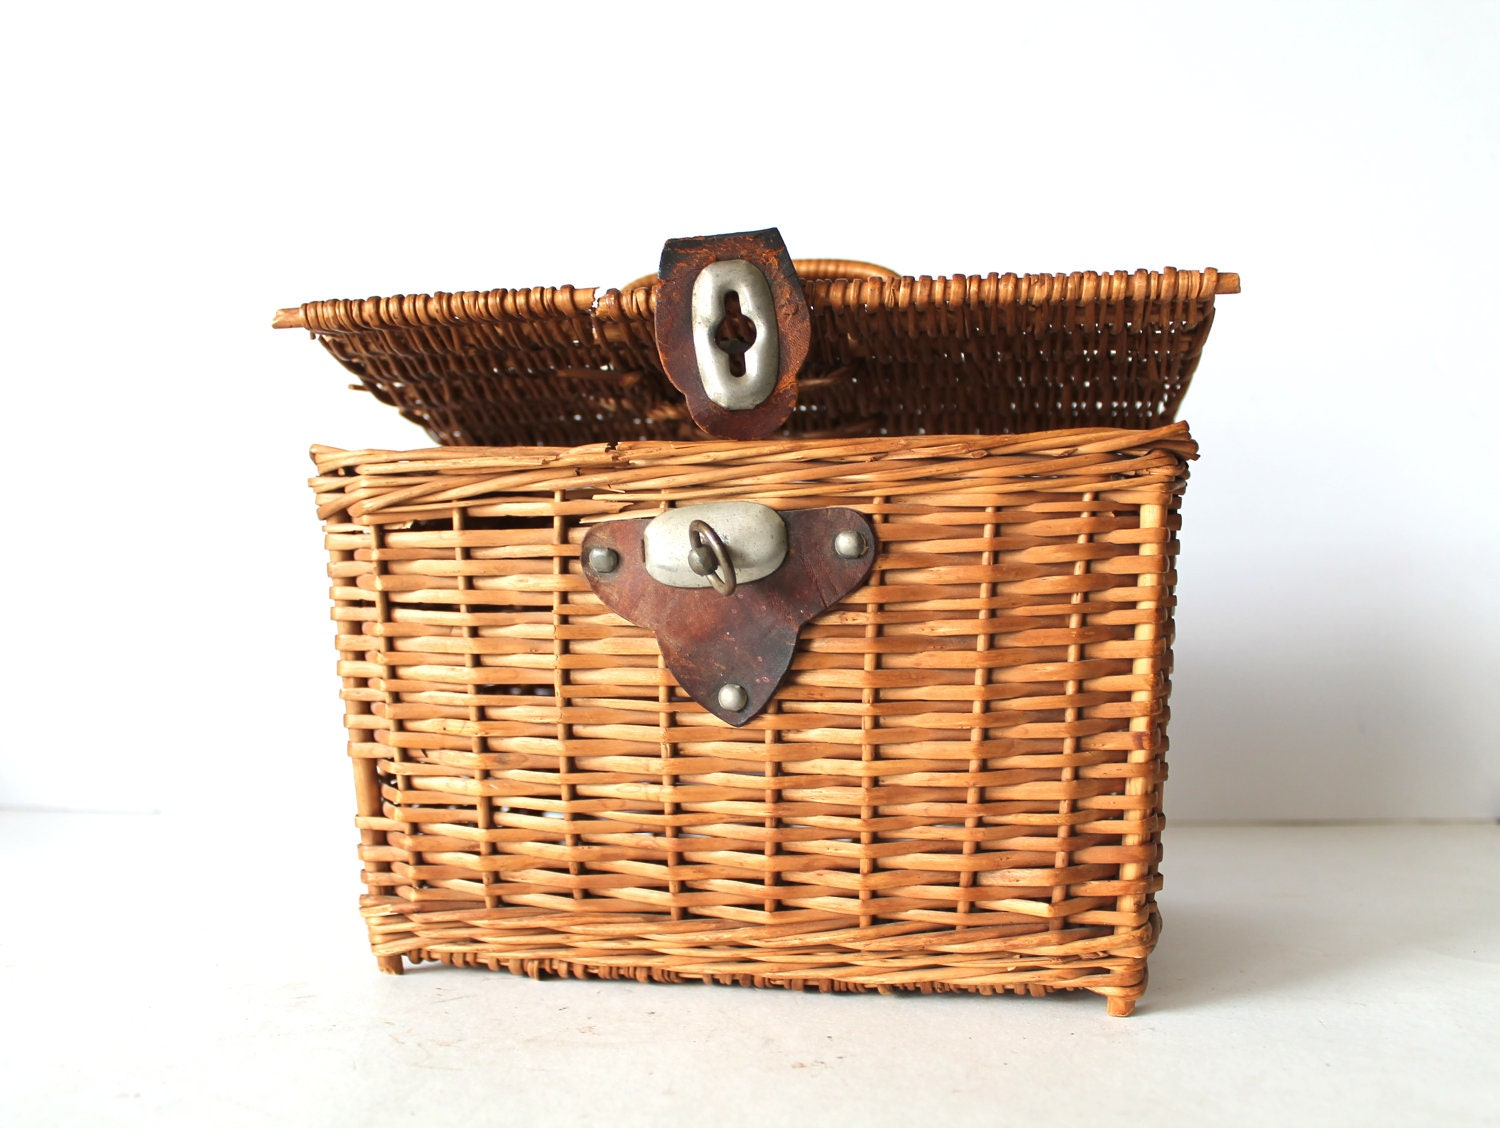 Picnic basket lunch : Vintage wicker picnic basket lunch box